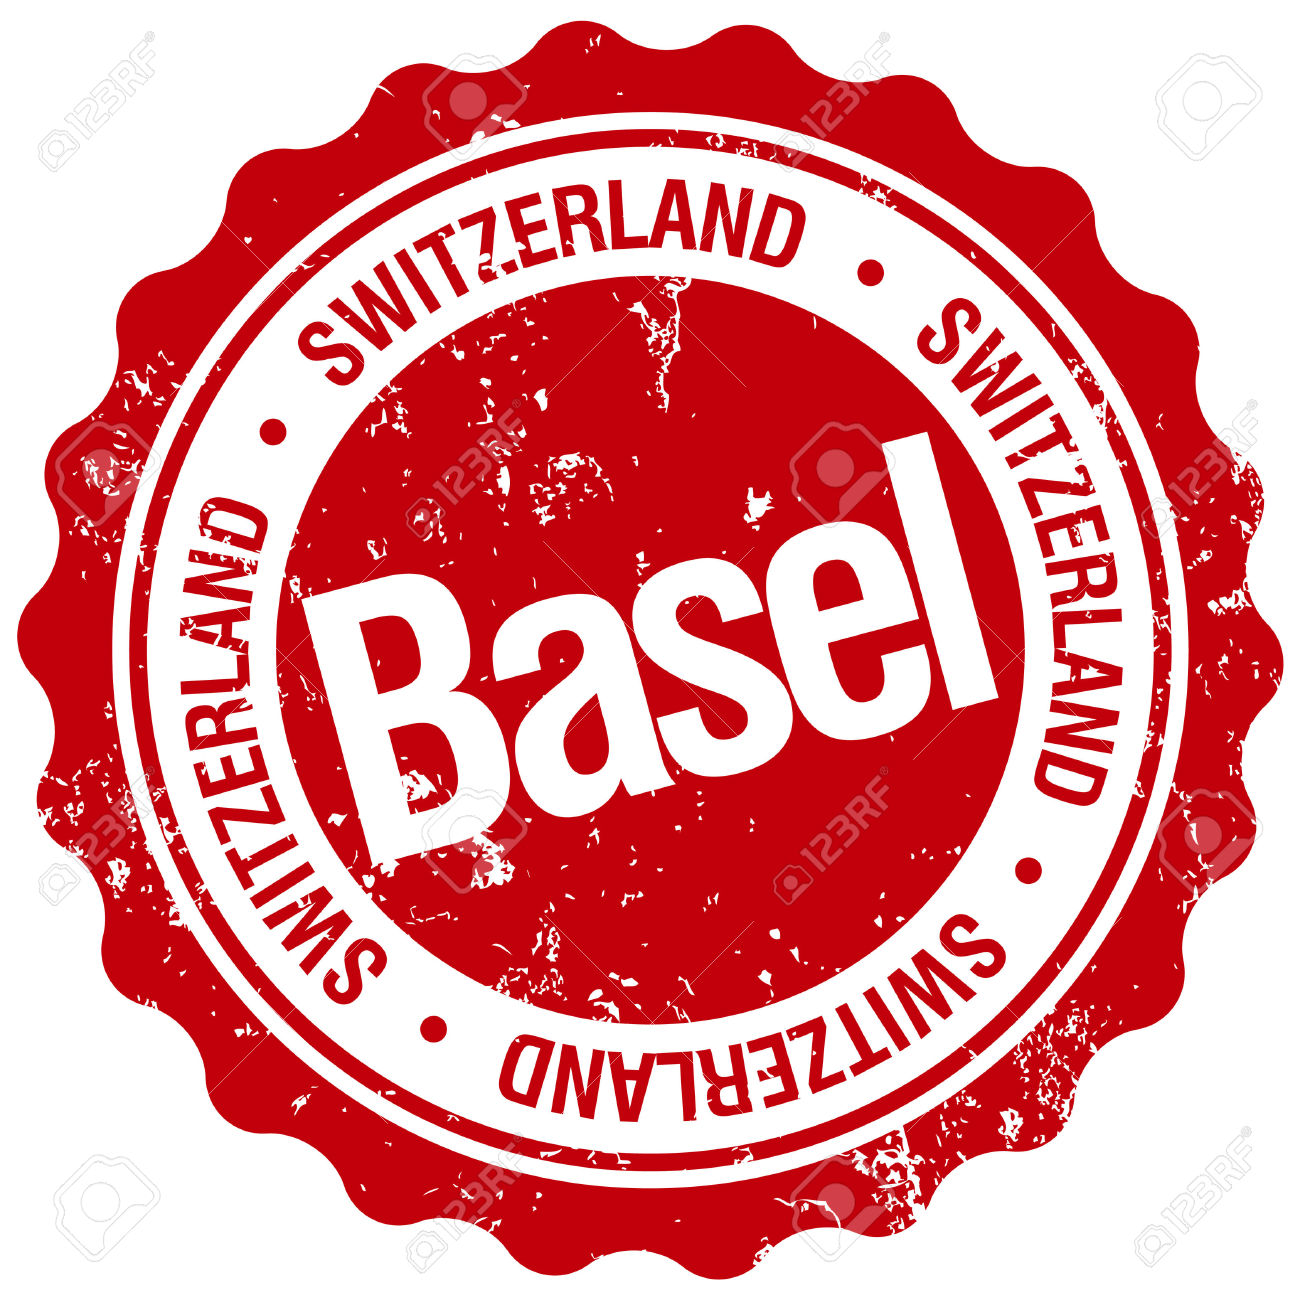 Basel Switzerland Stamp Royalty Free Cliparts, Vectors, And Stock.